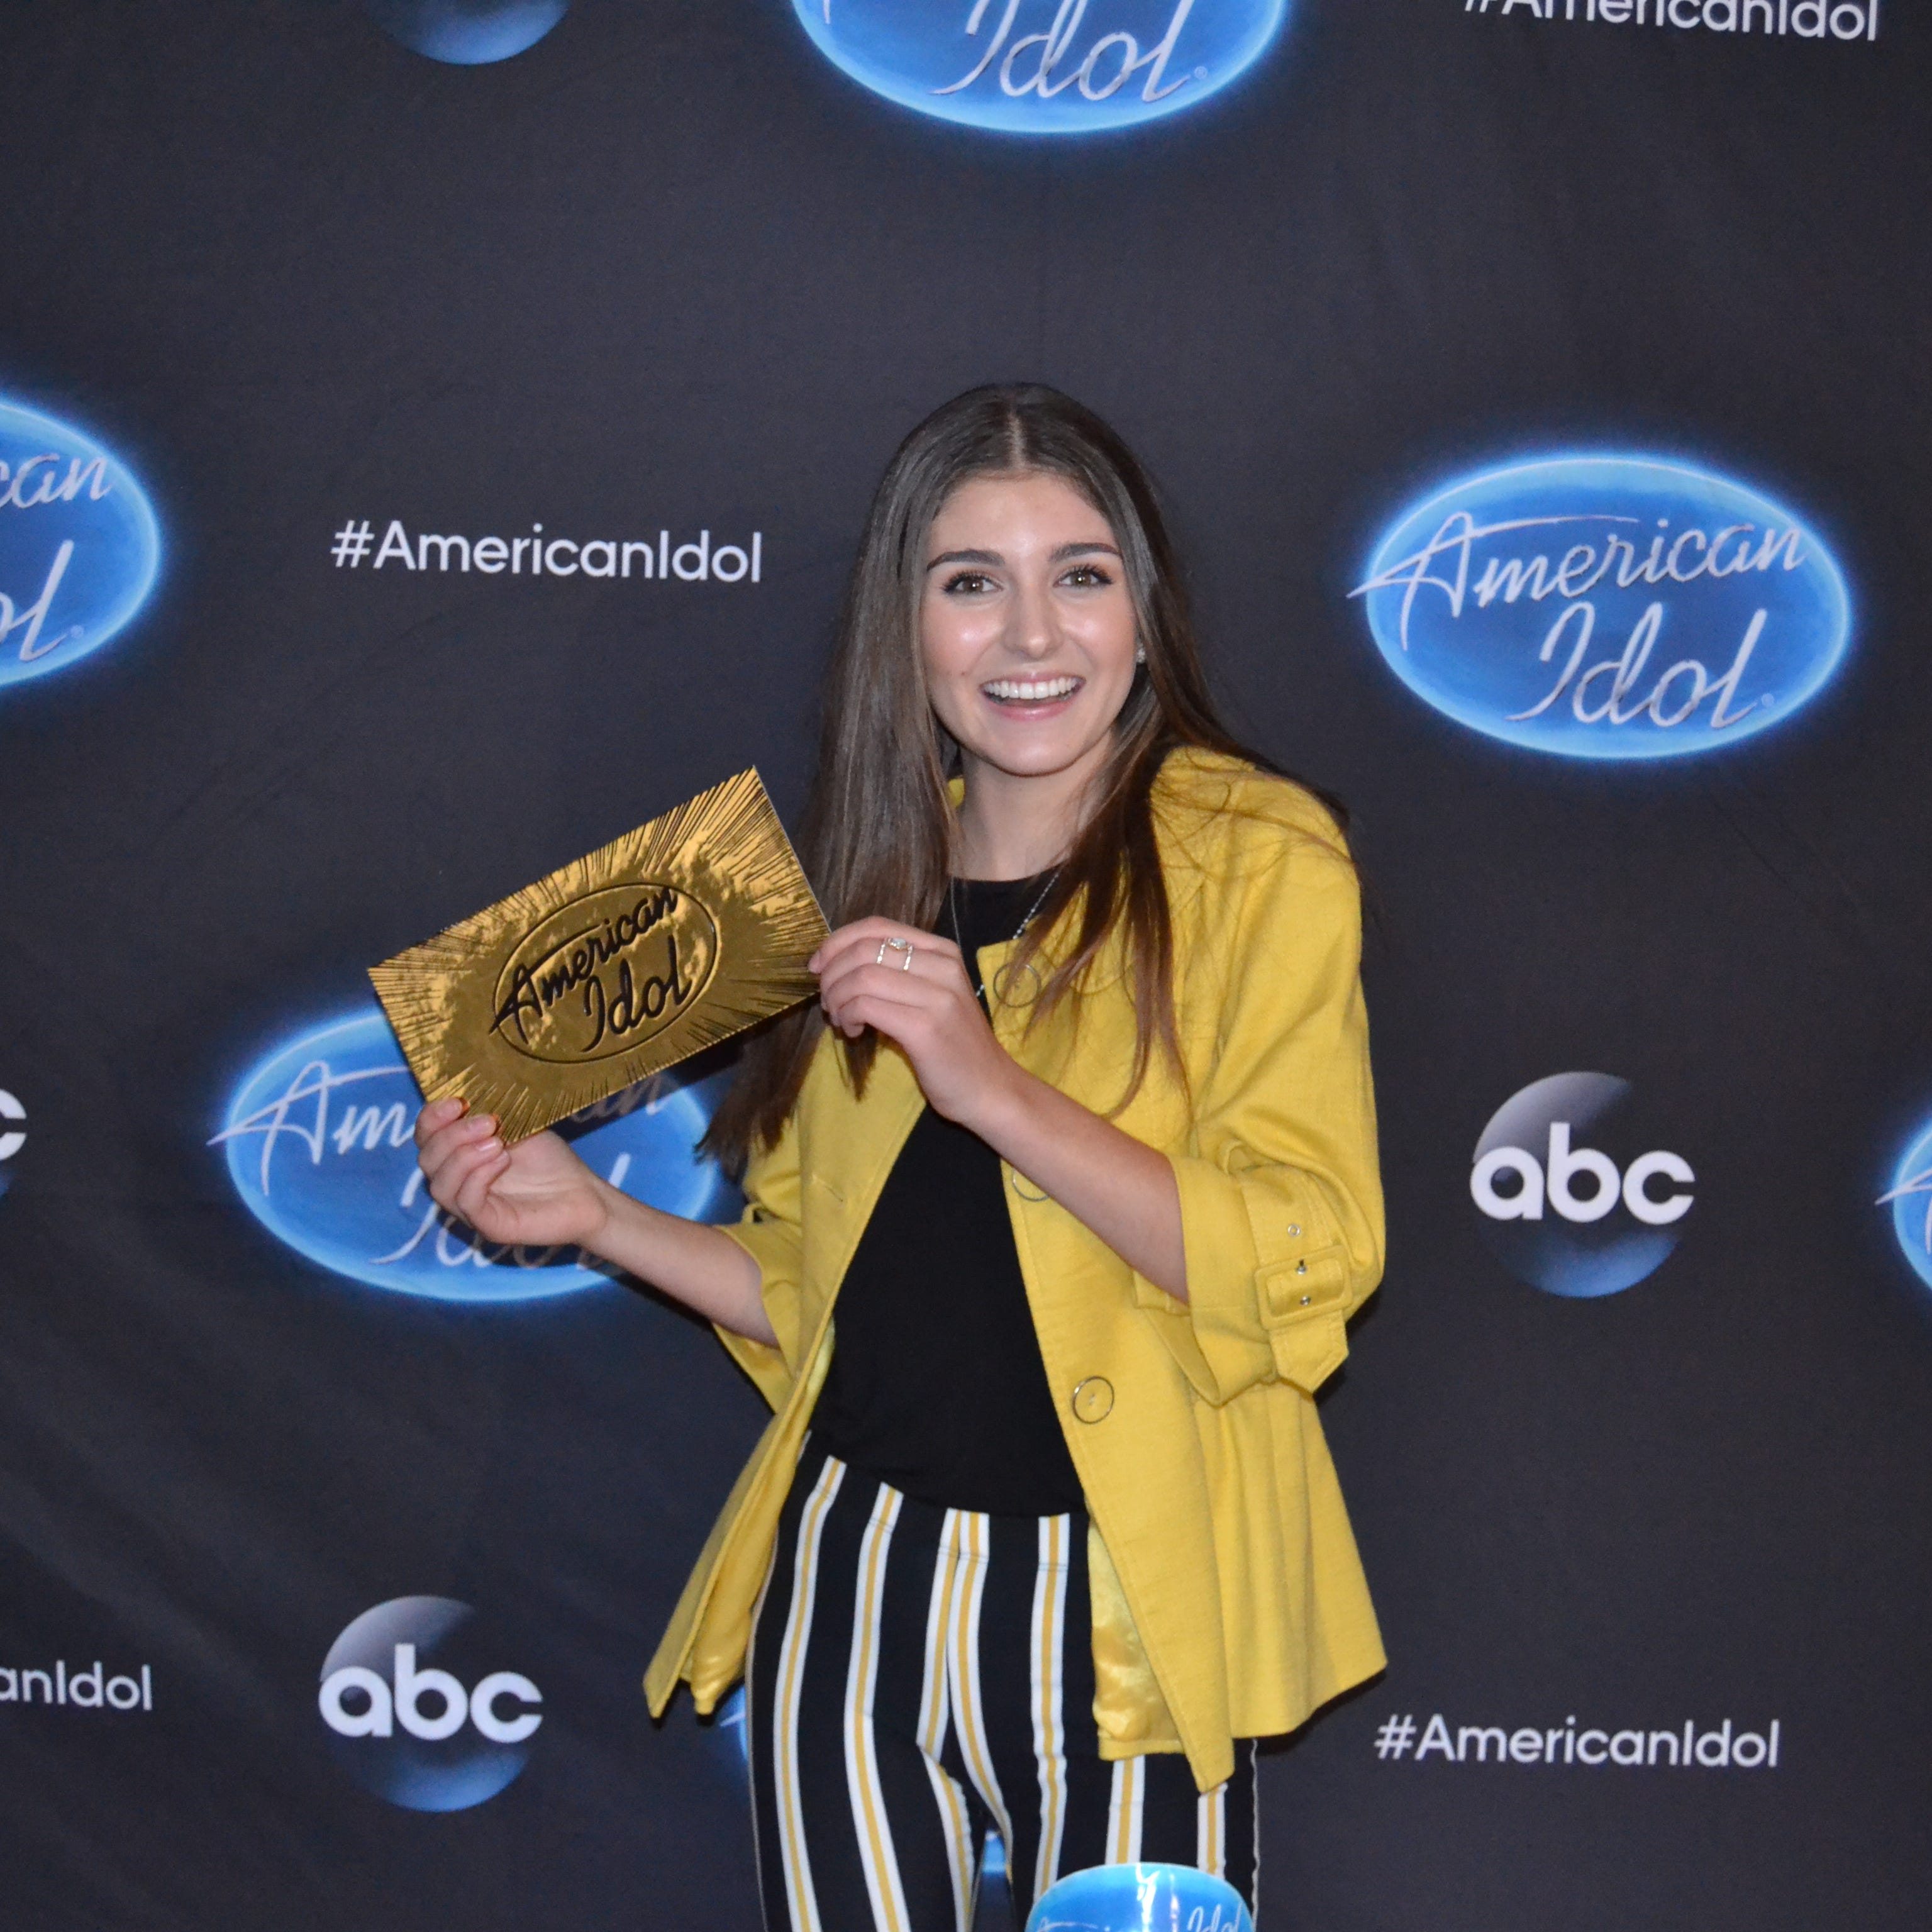 Oshkosh teen Franki Moscato gets golden ticket on 'American Idol,' advances to Hollywood